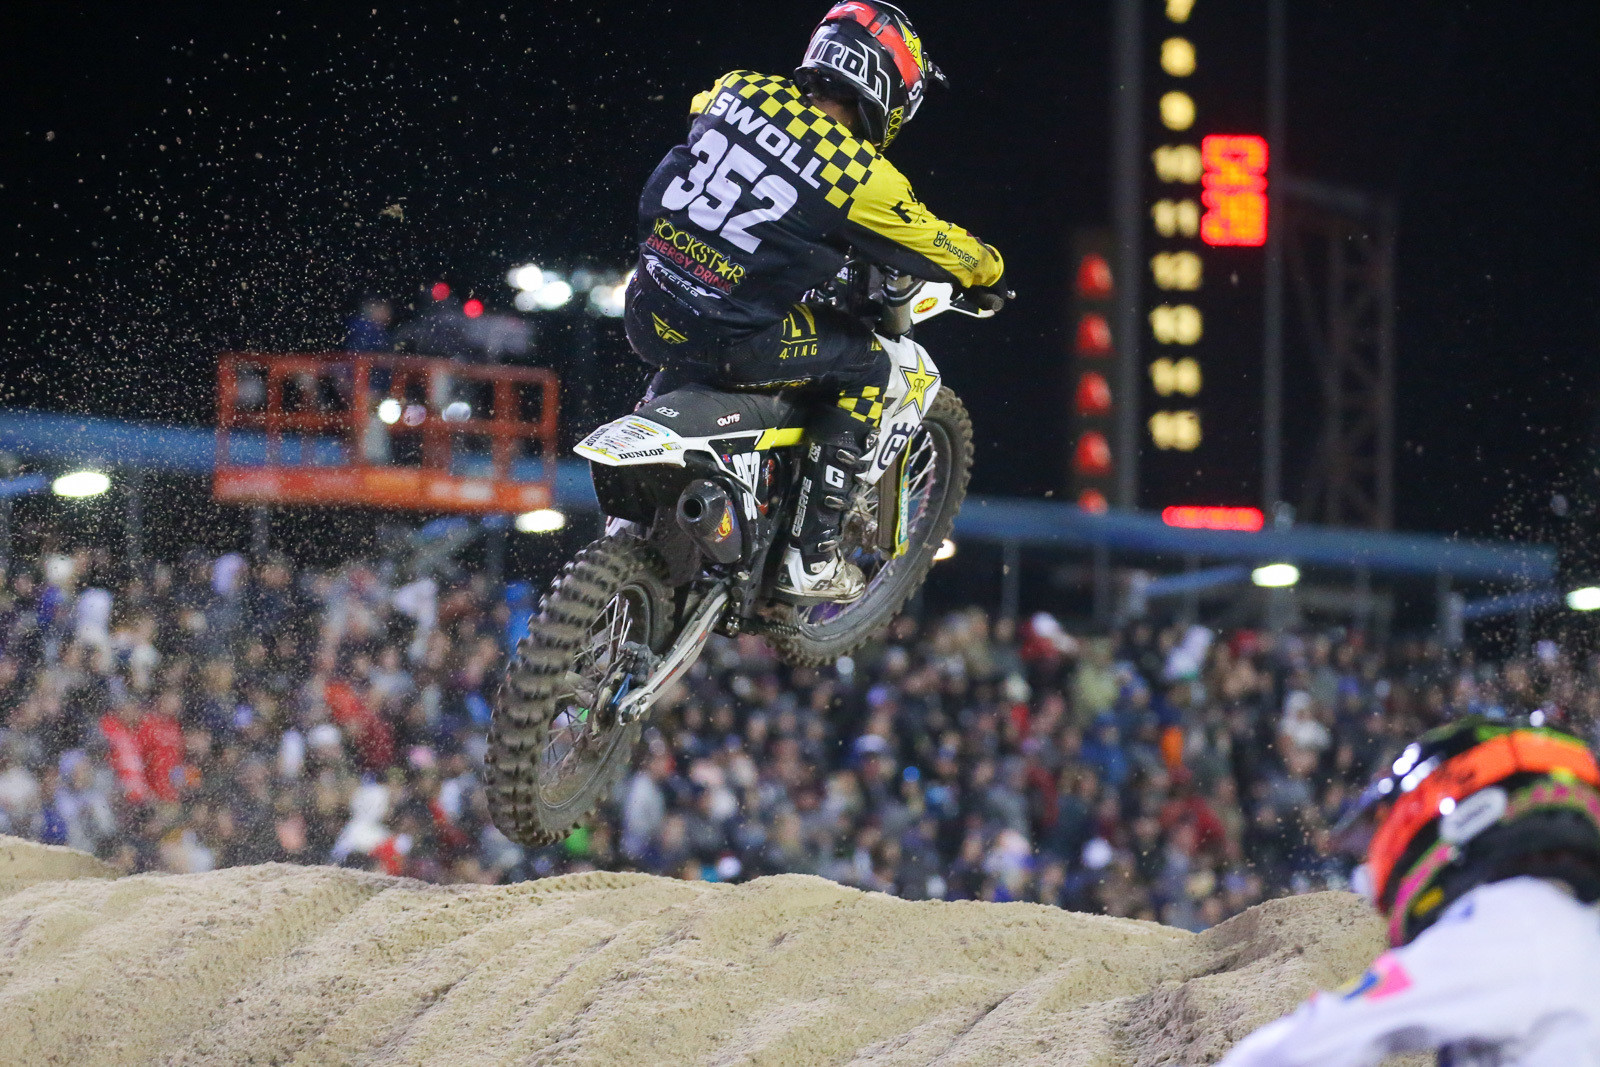 There were a trio of riders who advanced five spots in the main, including Jalek Swoll (he was ninth)...